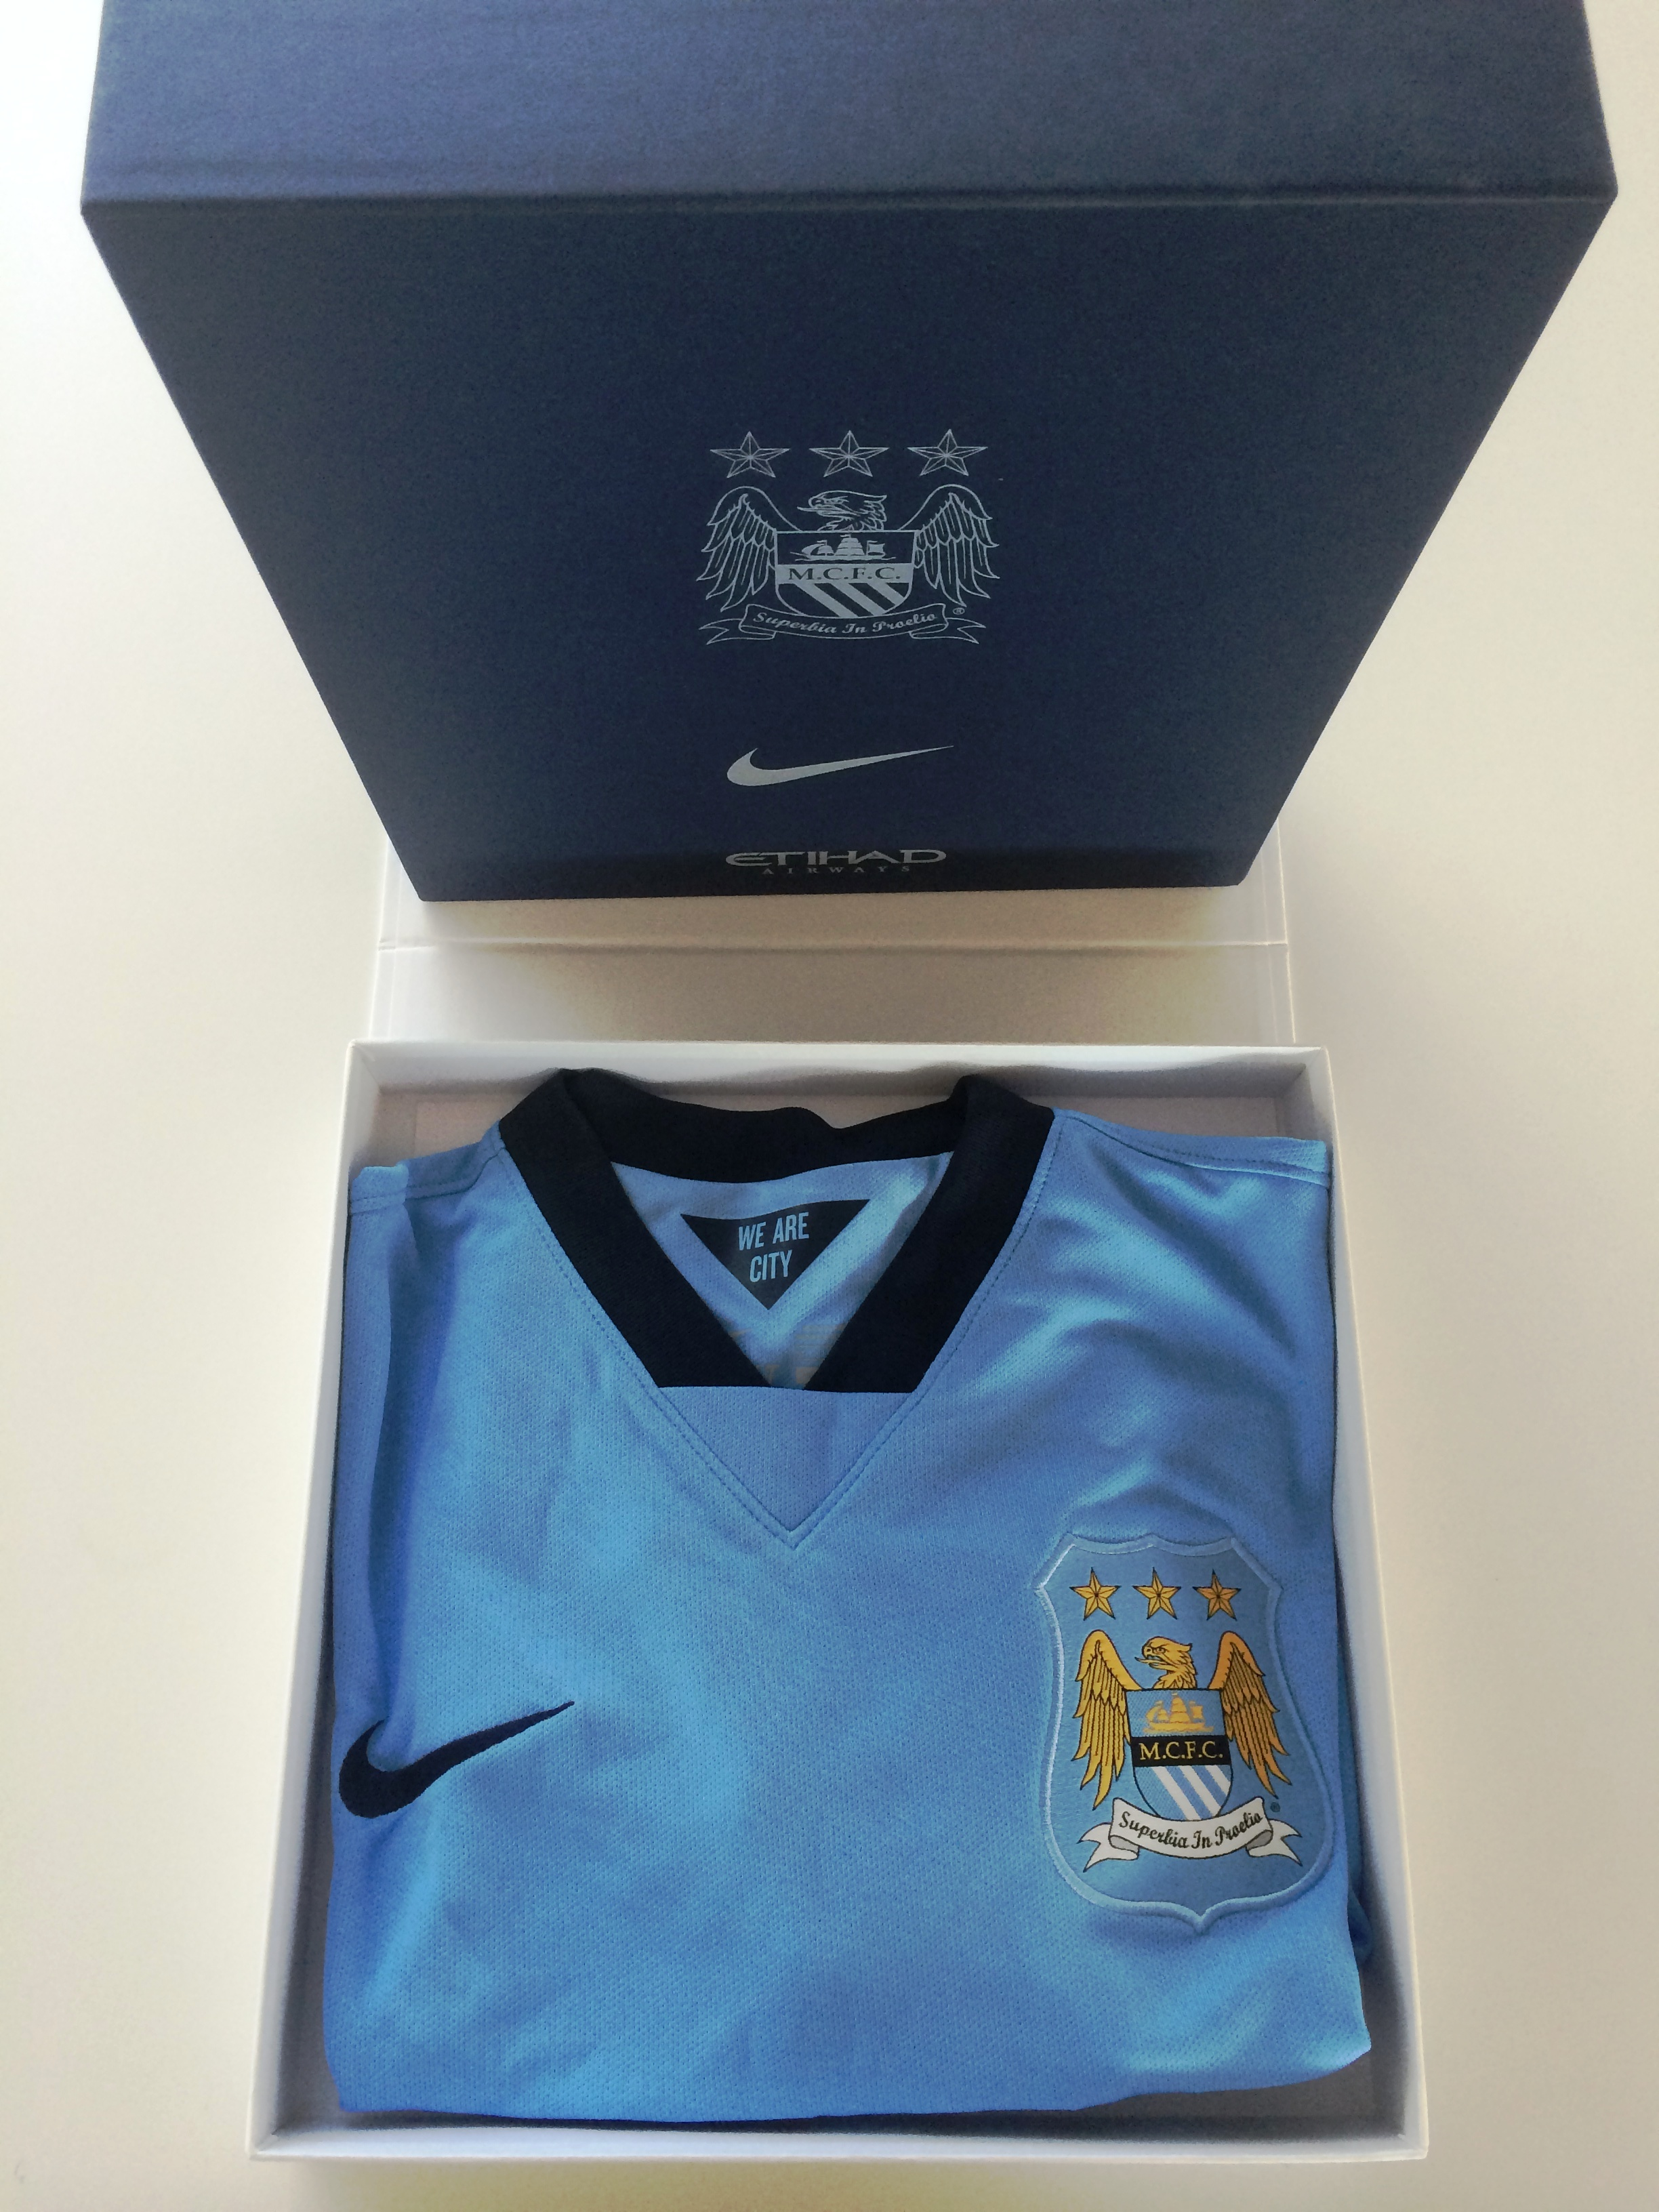 Win with Read But Never Red & Etihad Airways - a boxed MCFC home shirt awaits the winning entry.